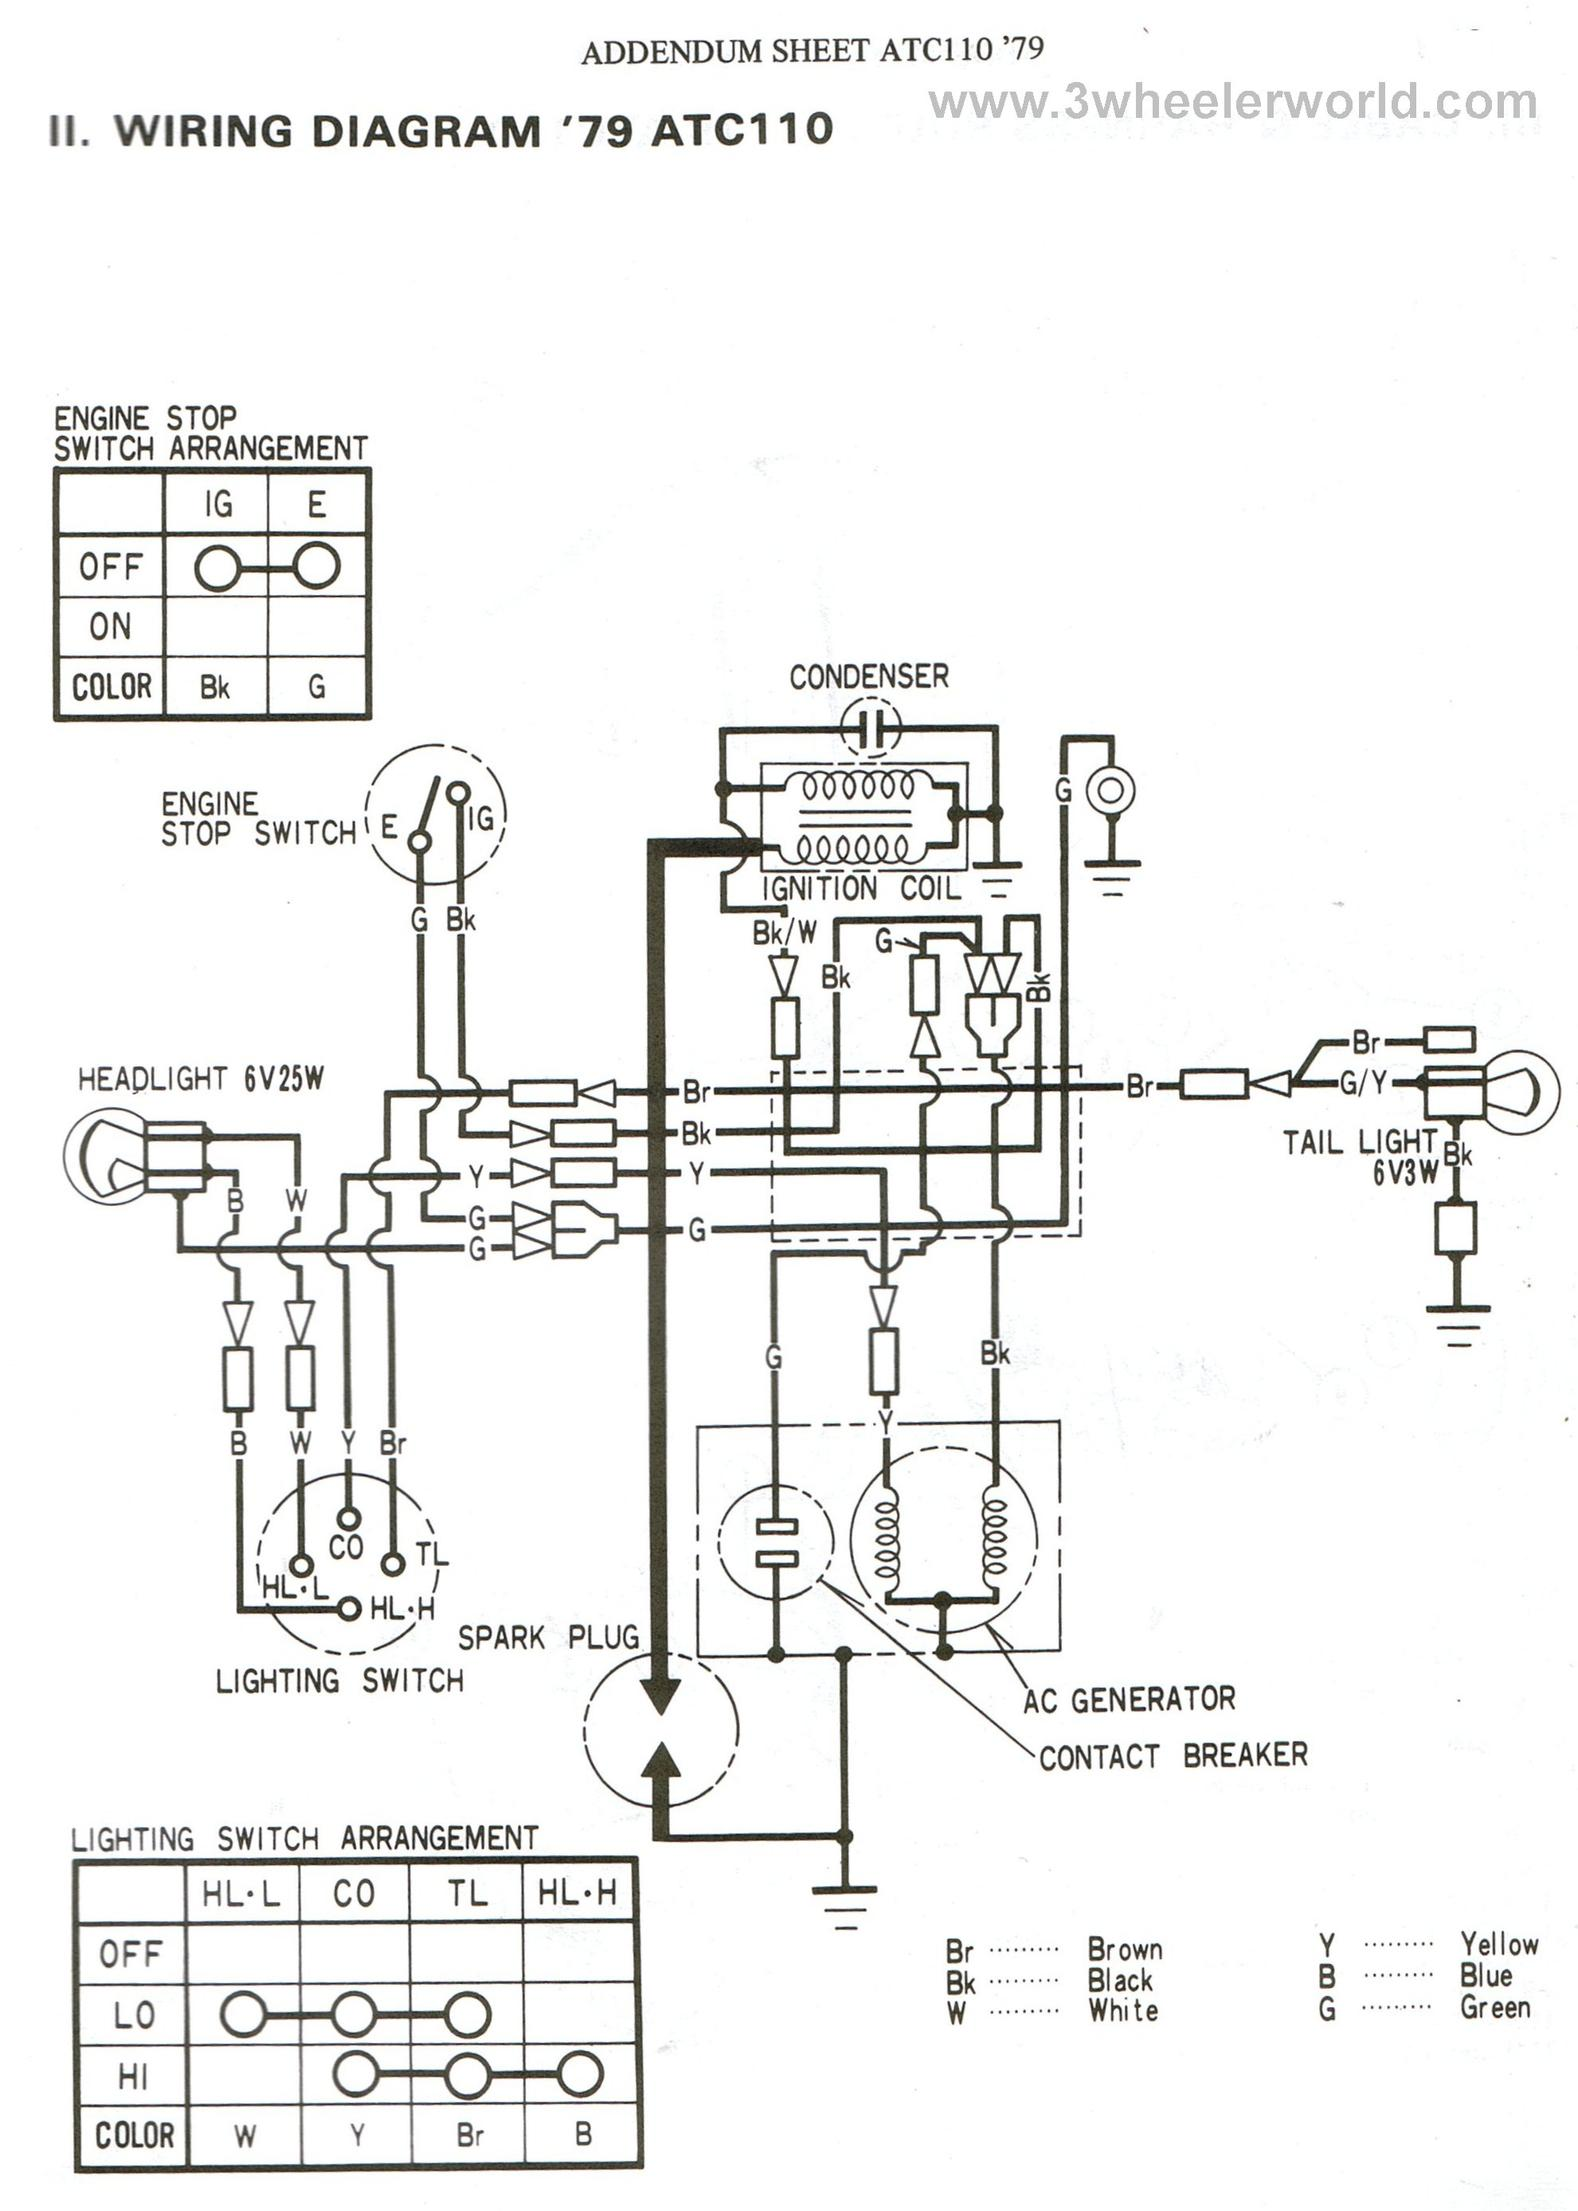 Attachment on Honda Atc 110 Wiring Diagram